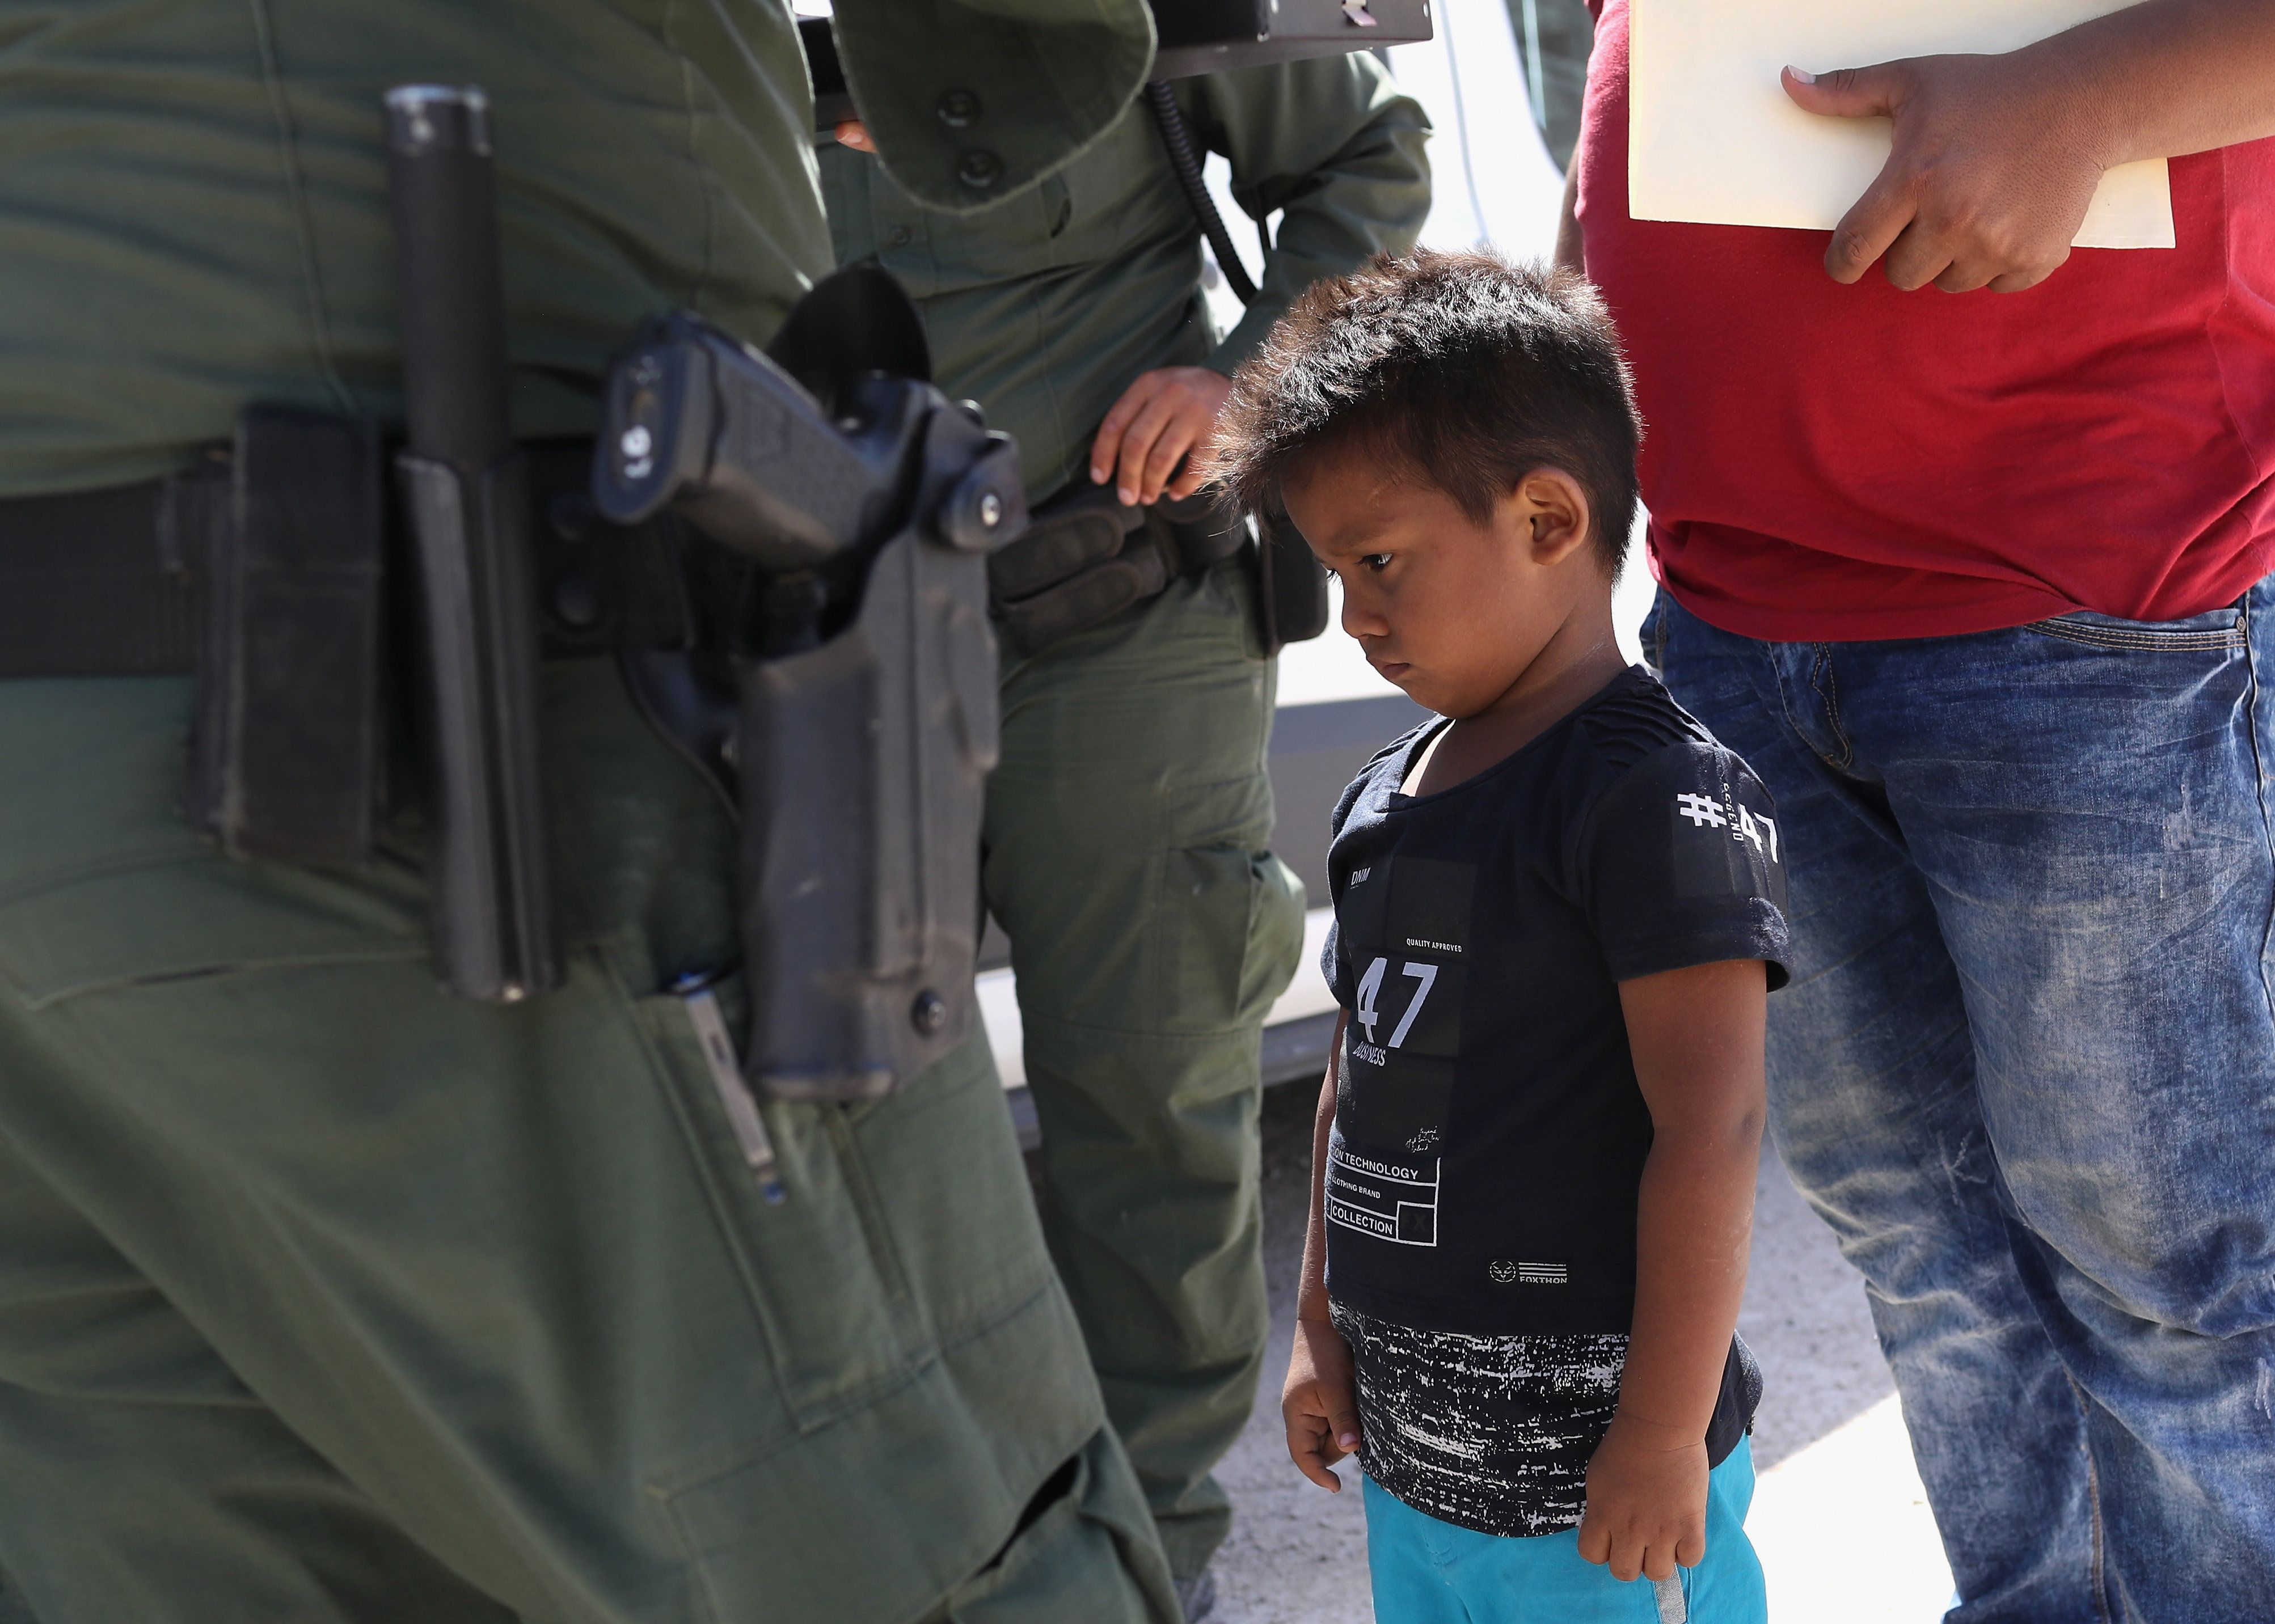 A boy and father from Honduras are taken into custody by U.S. Border Patrol agents on June 12near Mission, Texas. The a